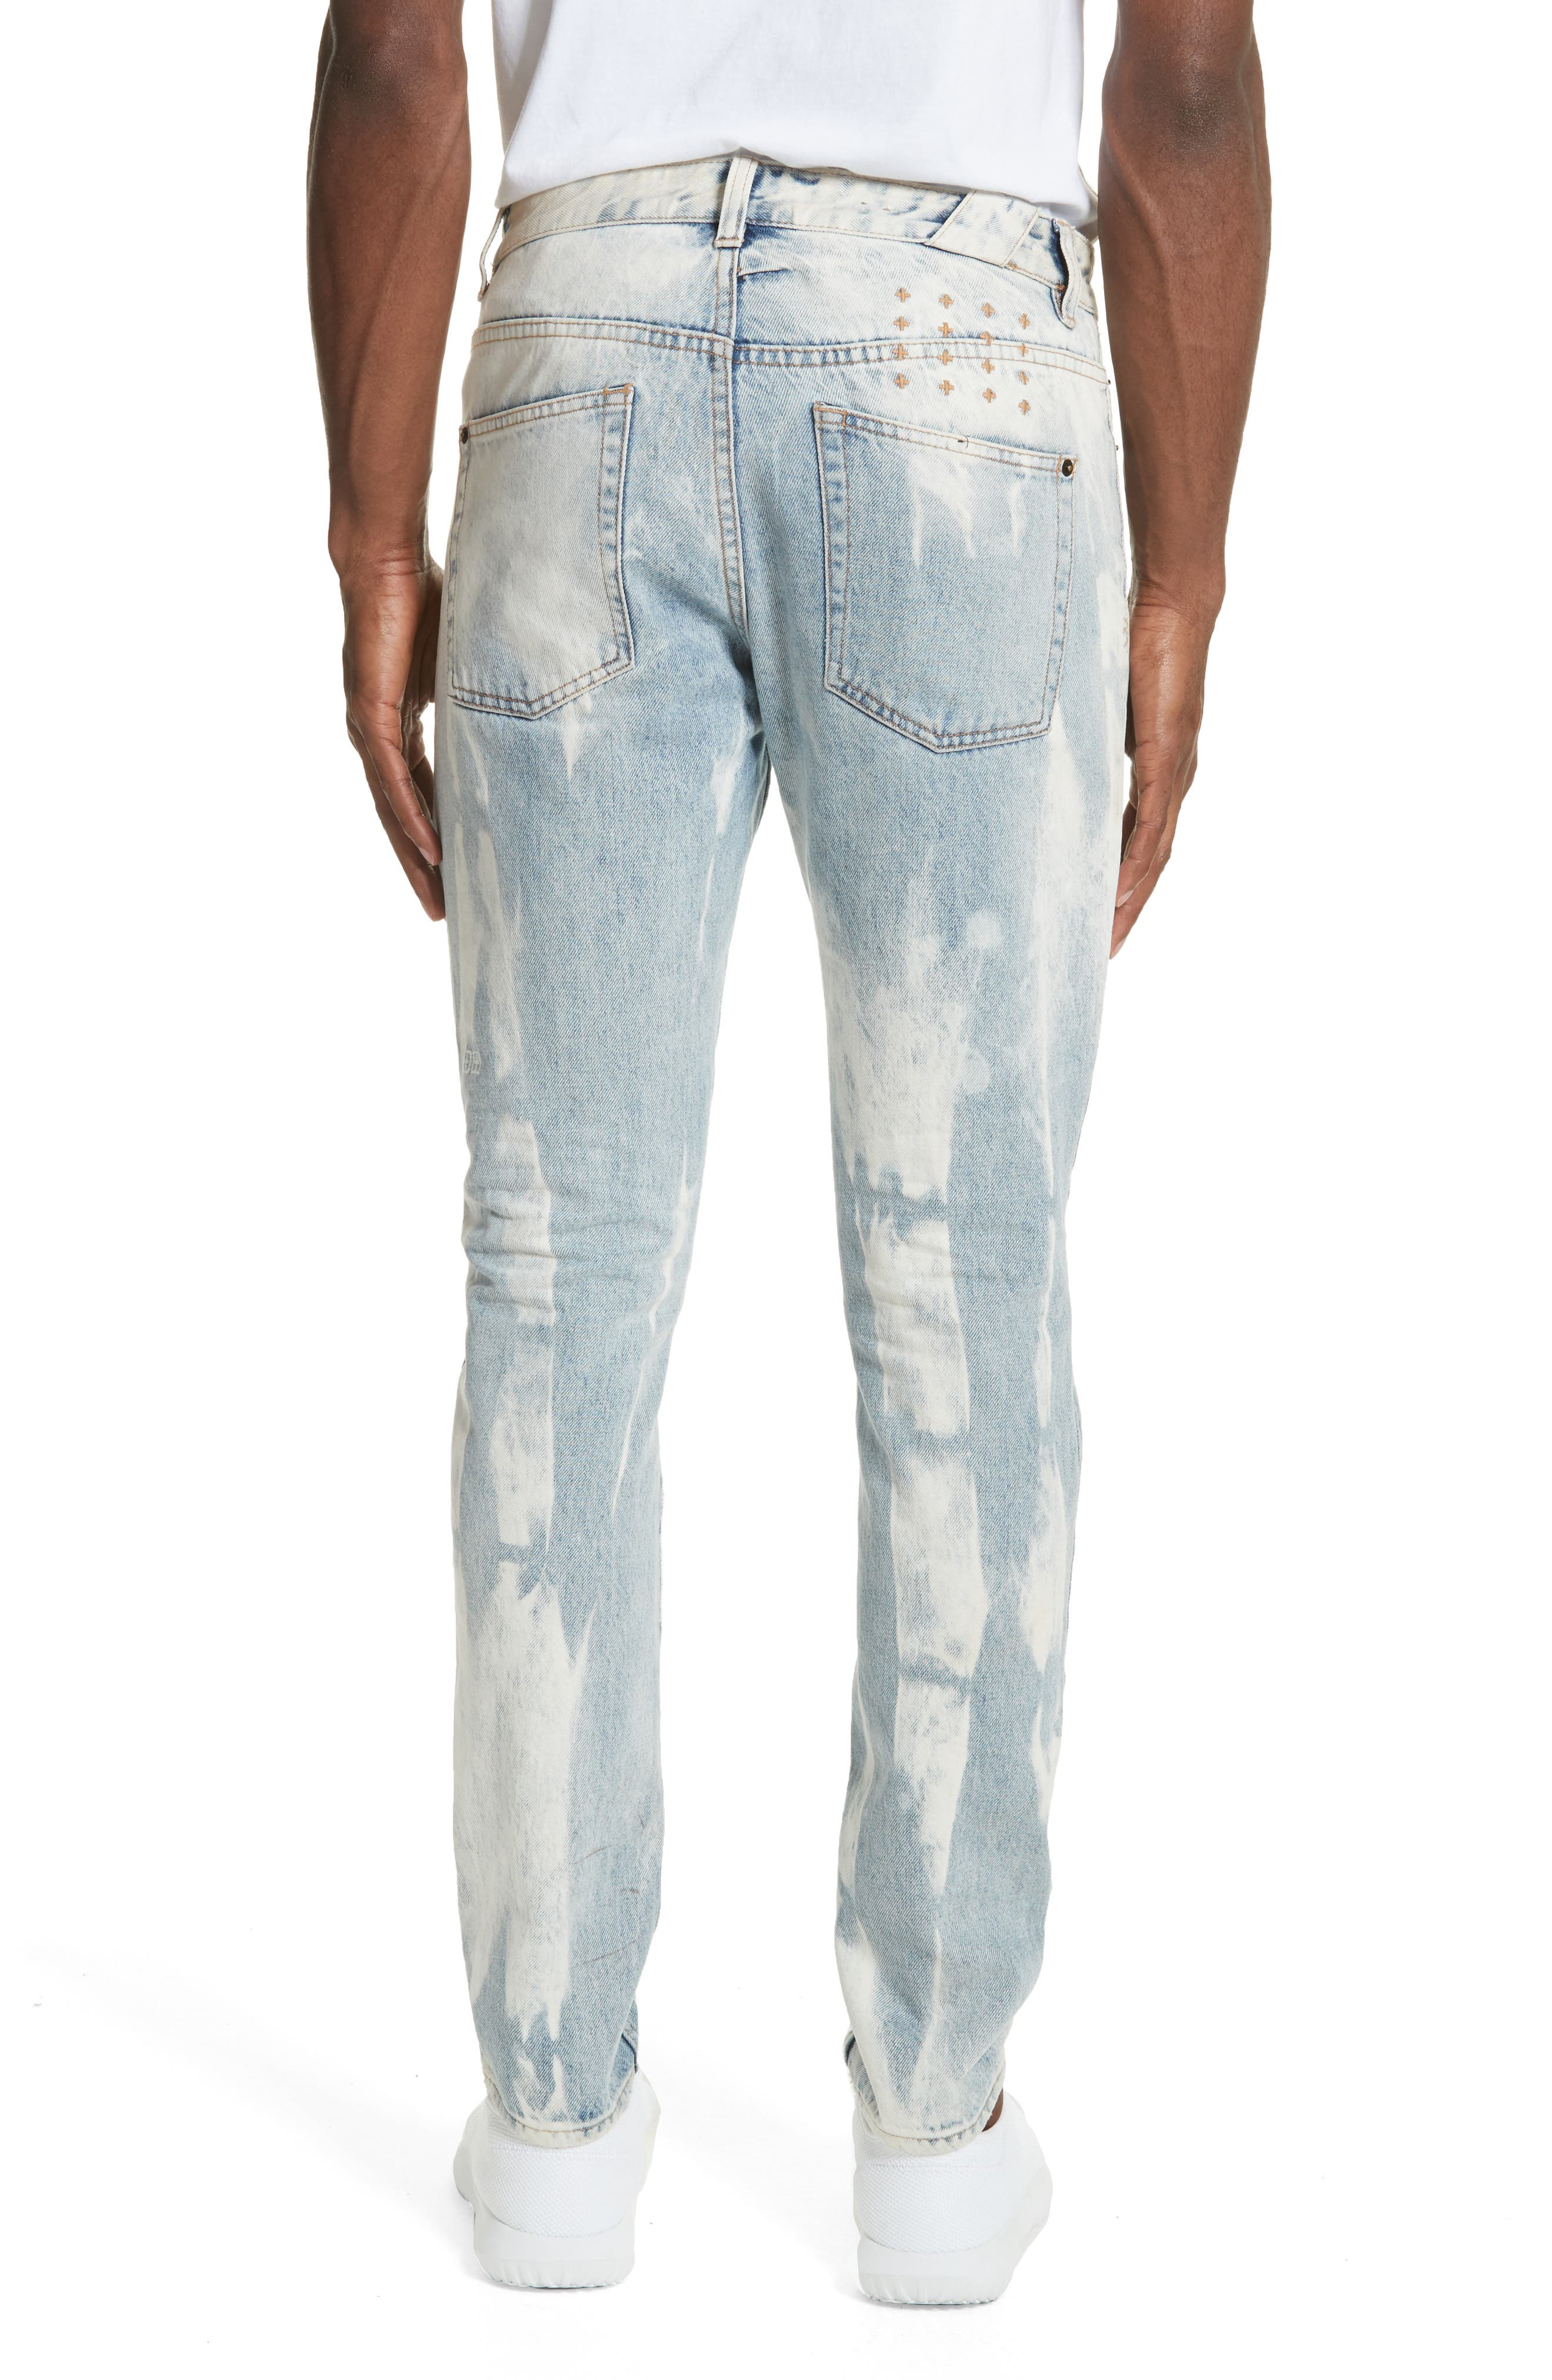 Chitch Mile Skinny Jeans,                             Alternate thumbnail 2, color,                             Denim